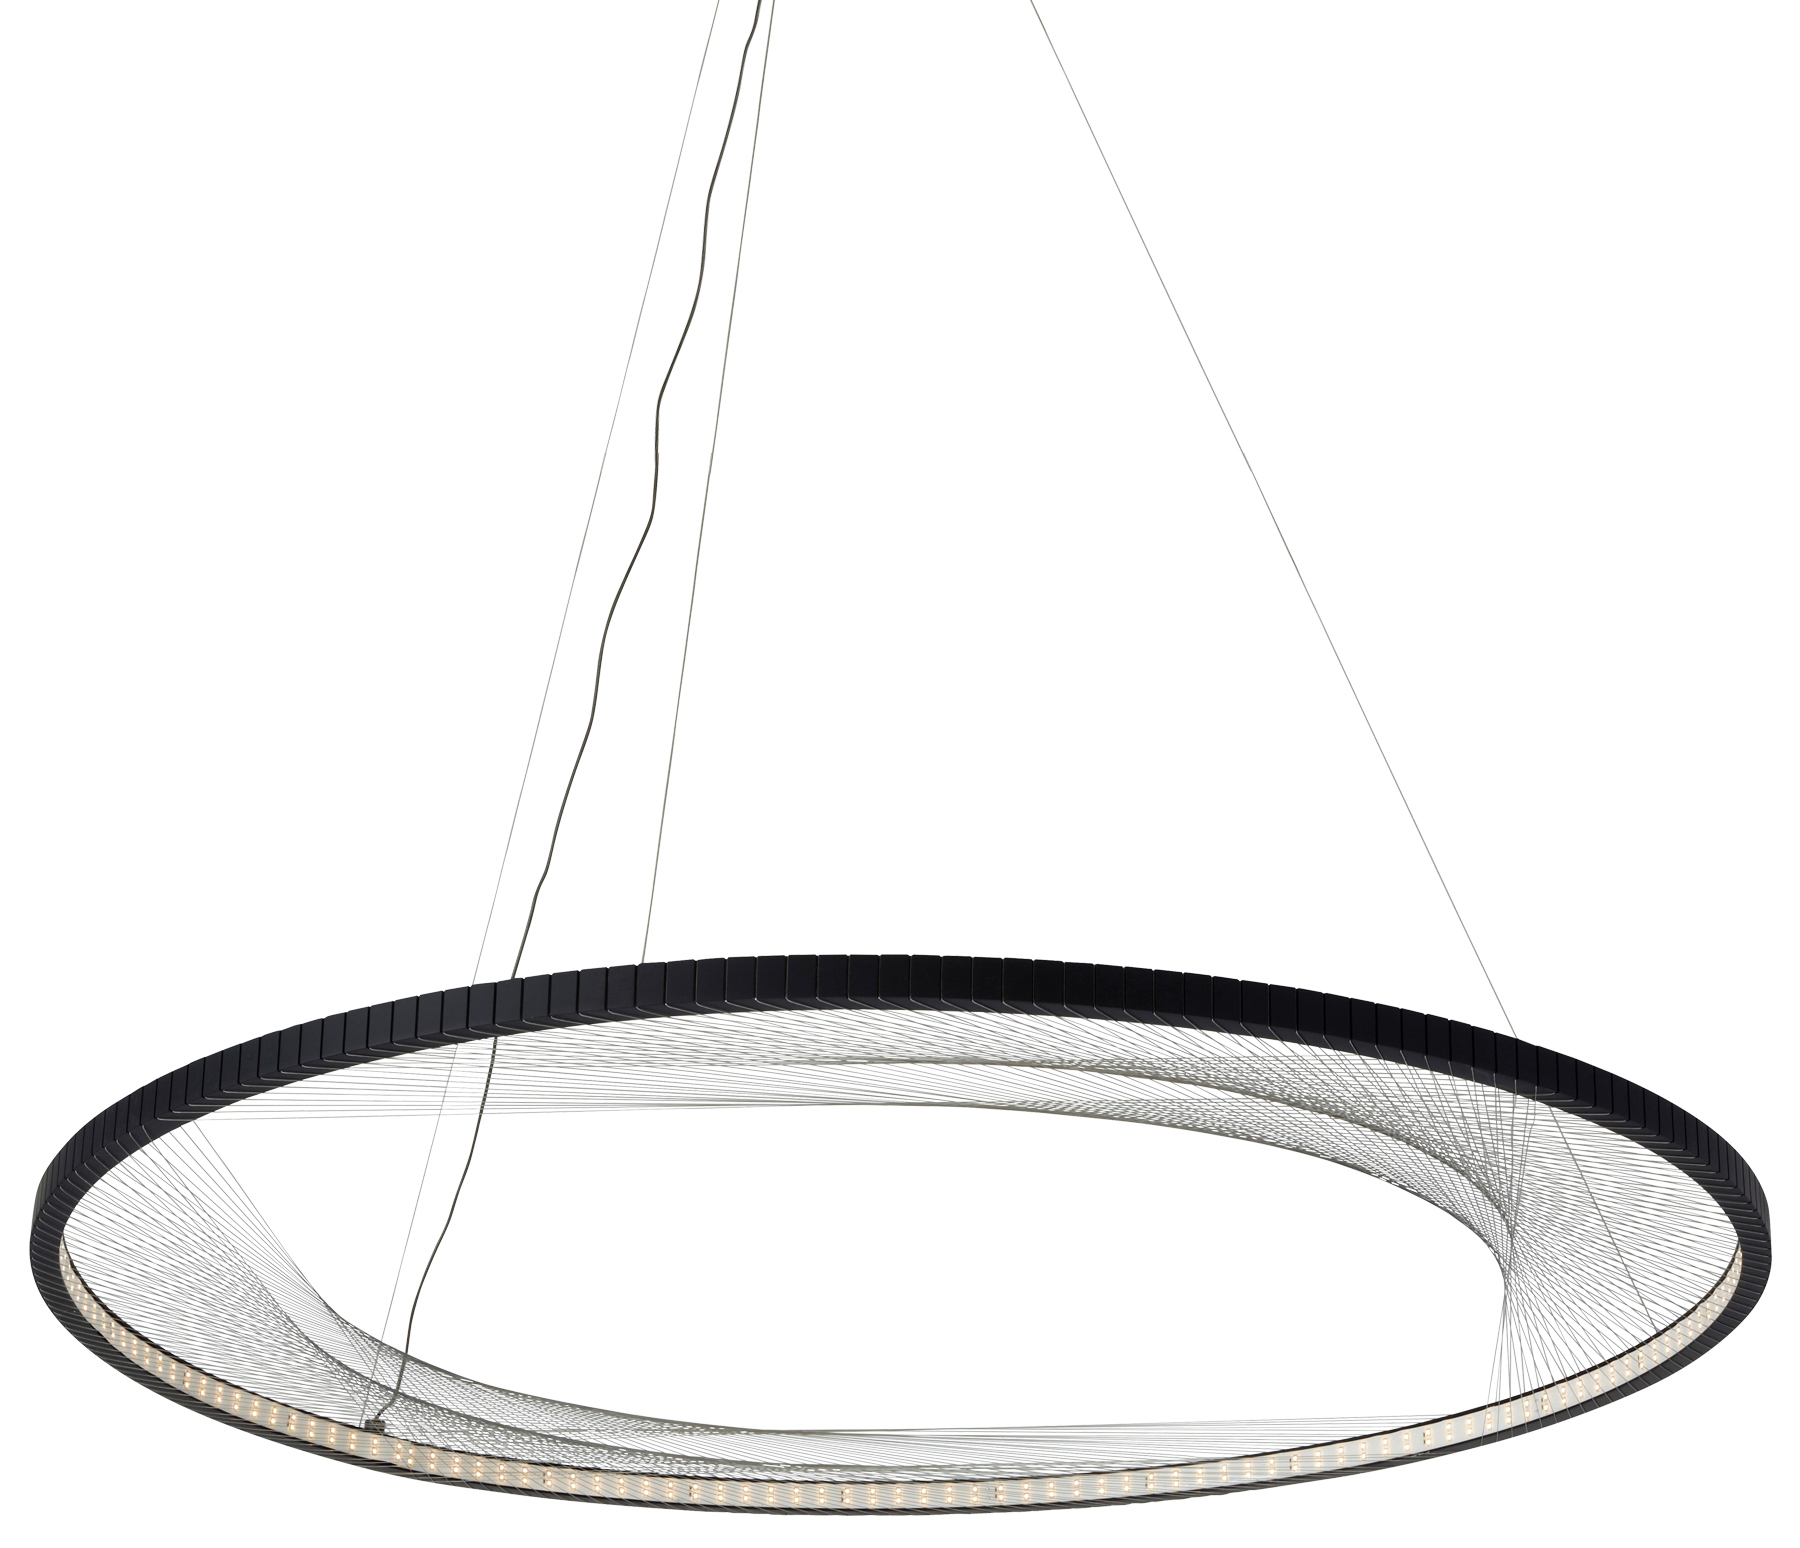 Lbl lighting new arrivals lightstyle of tampa bay lbl lighting new arrivals arubaitofo Gallery